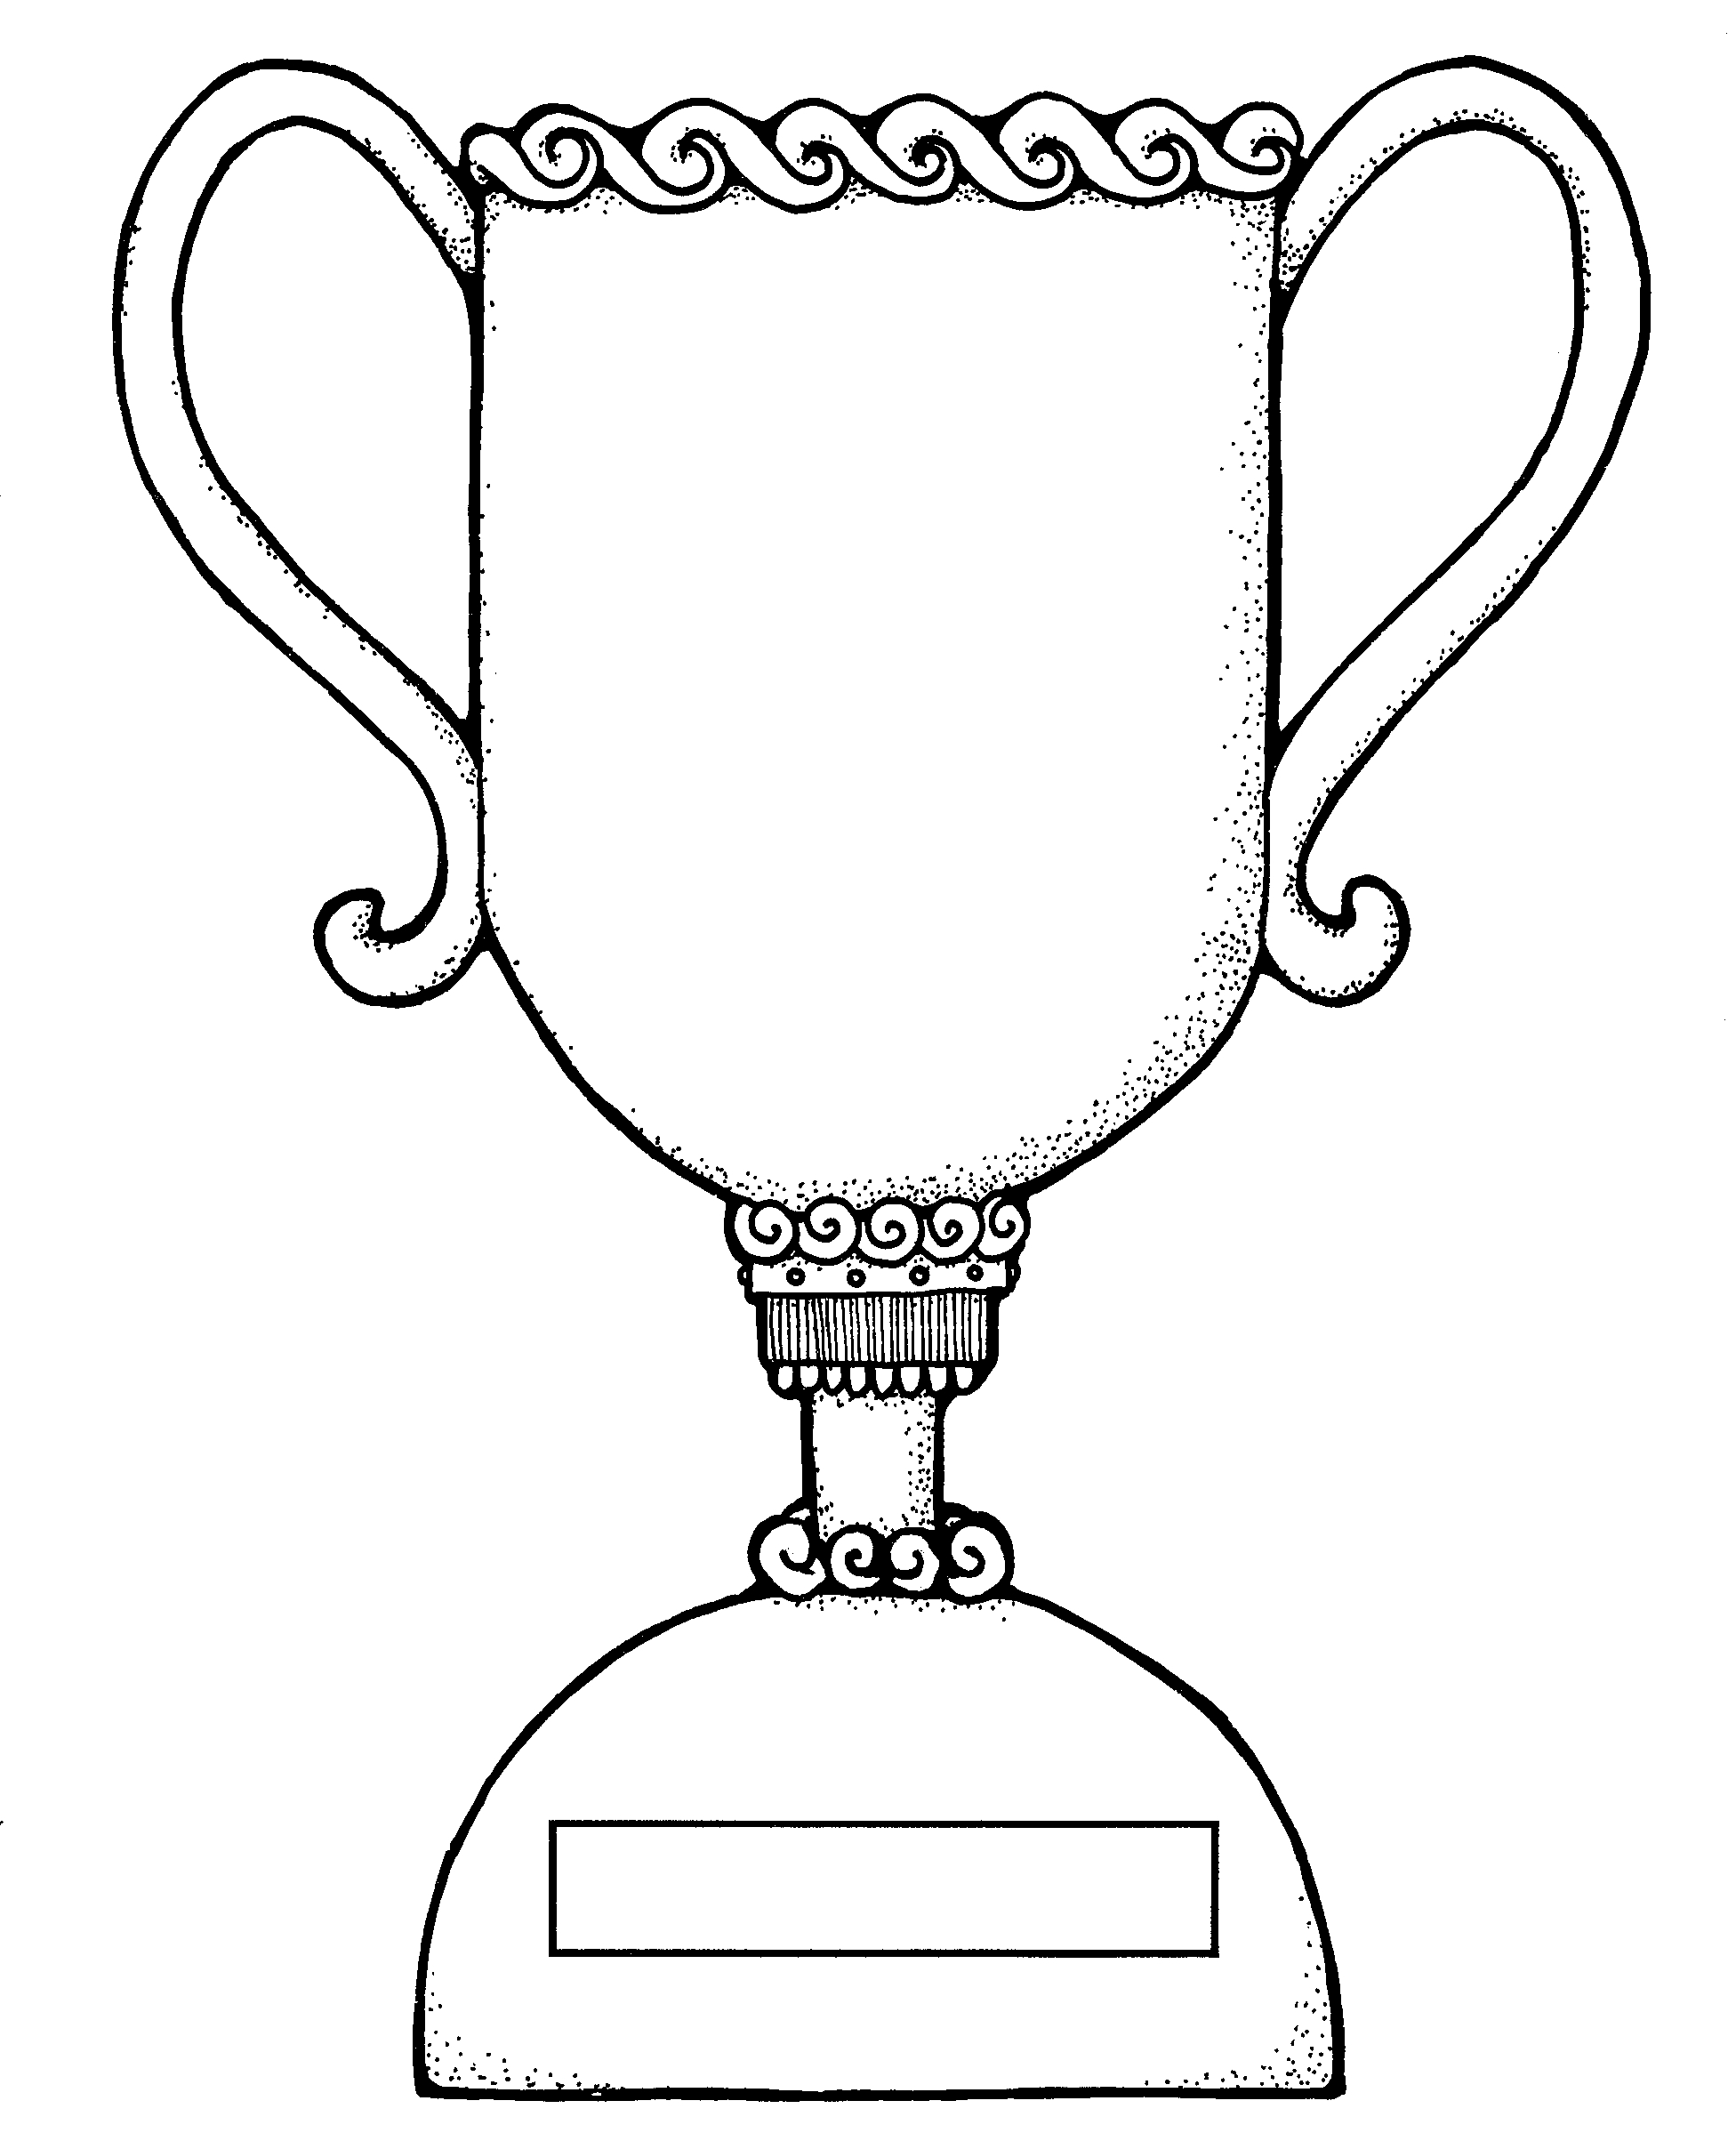 printable trophy free sports cup cliparts download free clip art free trophy printable